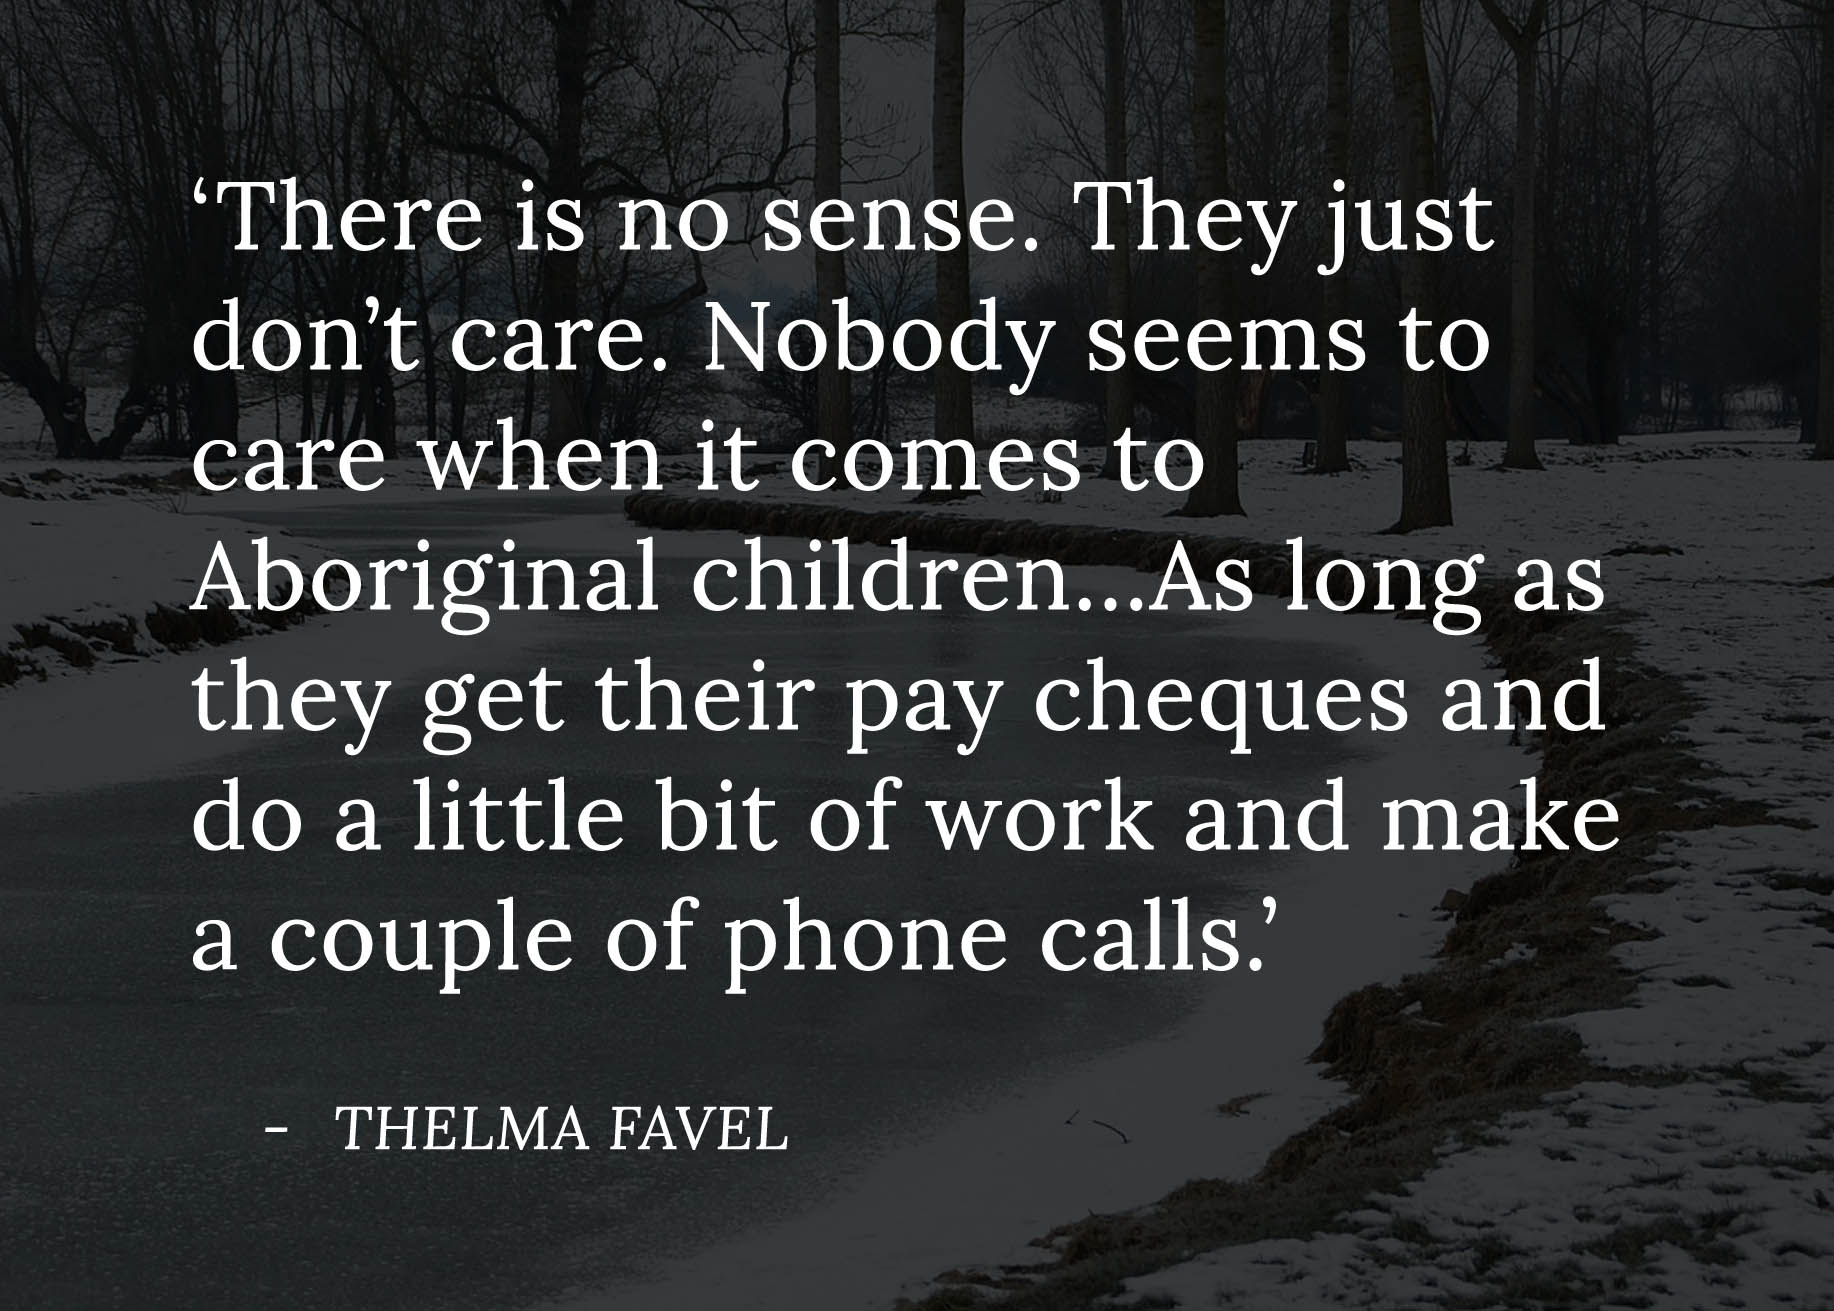 Quote from Thelma Favel which reads 'There is no sense. They just don't care. Nobody seems to care when it comes to Aboriginal children...As long as they get their pay cheques and do a little bit of work and make a couple of phone calls.' The quote is overlaid on a photo of a frozen river.